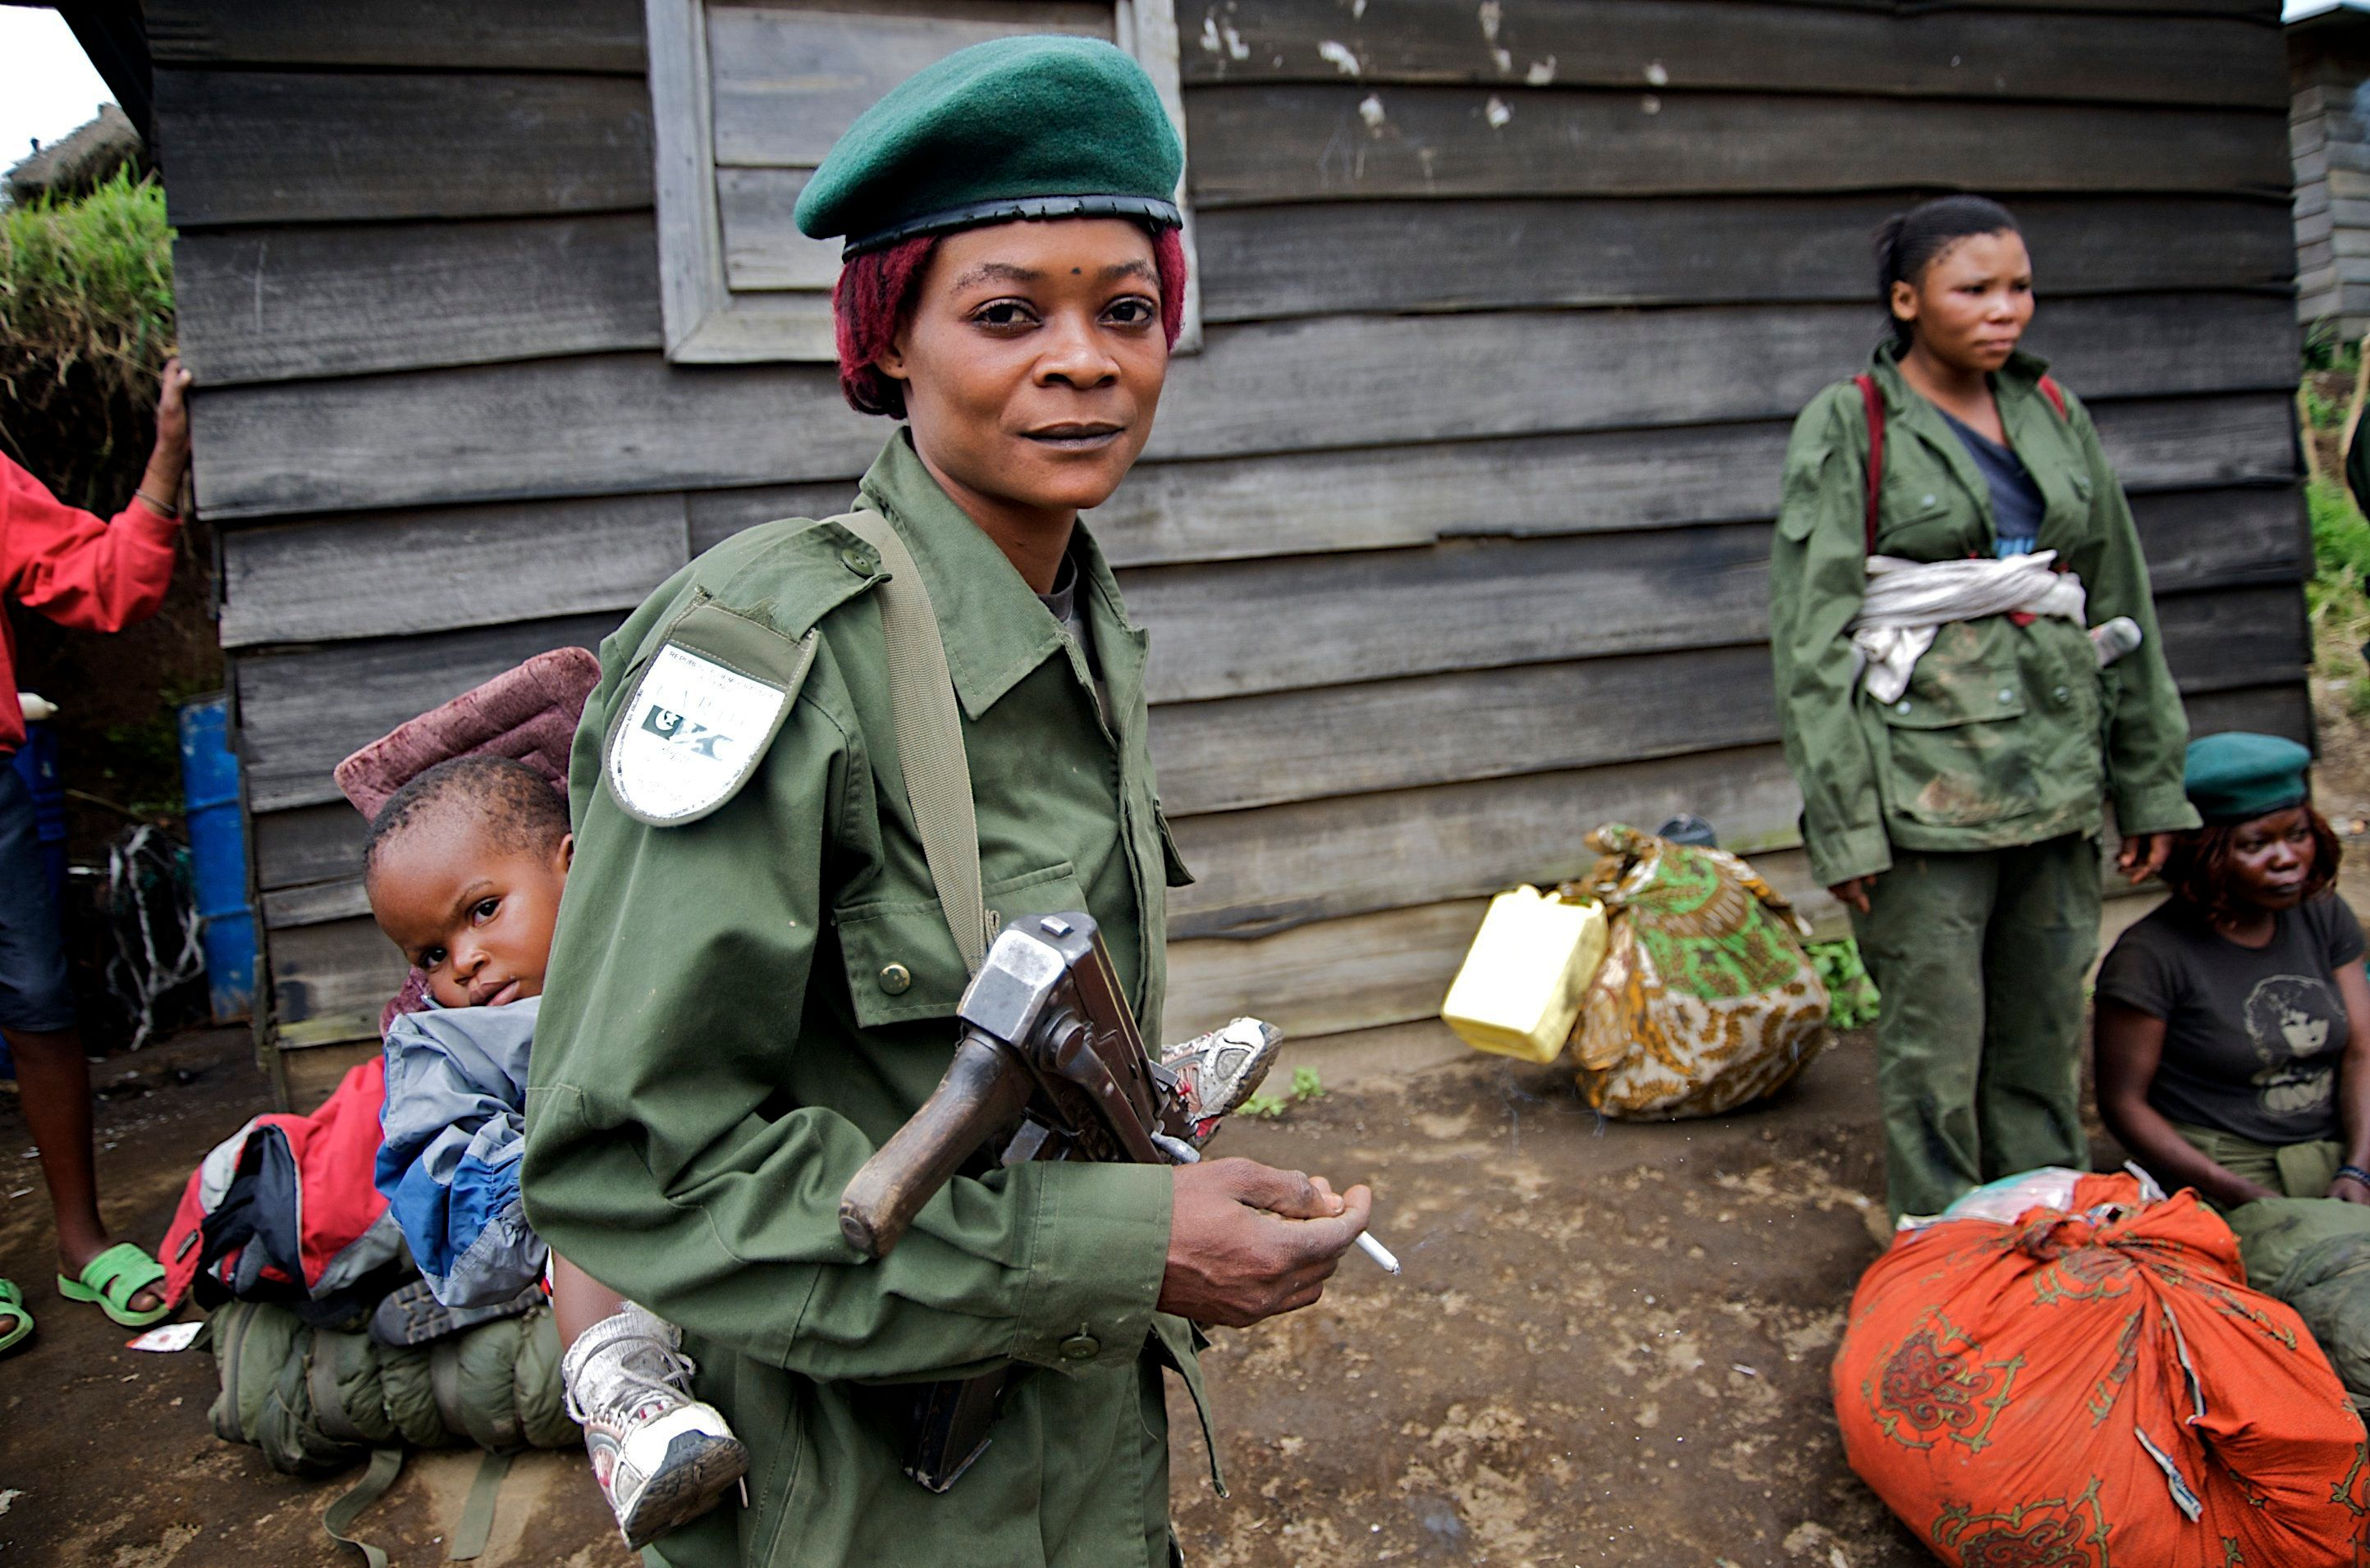 A government soldier carries her infant on her back at Mushake in eastern Congo, January 26, 2009. Congolese Hutu rebels said on Sunday they had clashed for the first time with a Rwandan-Congolese force deployed to crush them and civilians expressed fears they would be caught up in the violence. REUTERS/Alissa Everett (DEMOCRATIC REPUBLIC OF CONGO)   BEST QUALITY AVAILABLE